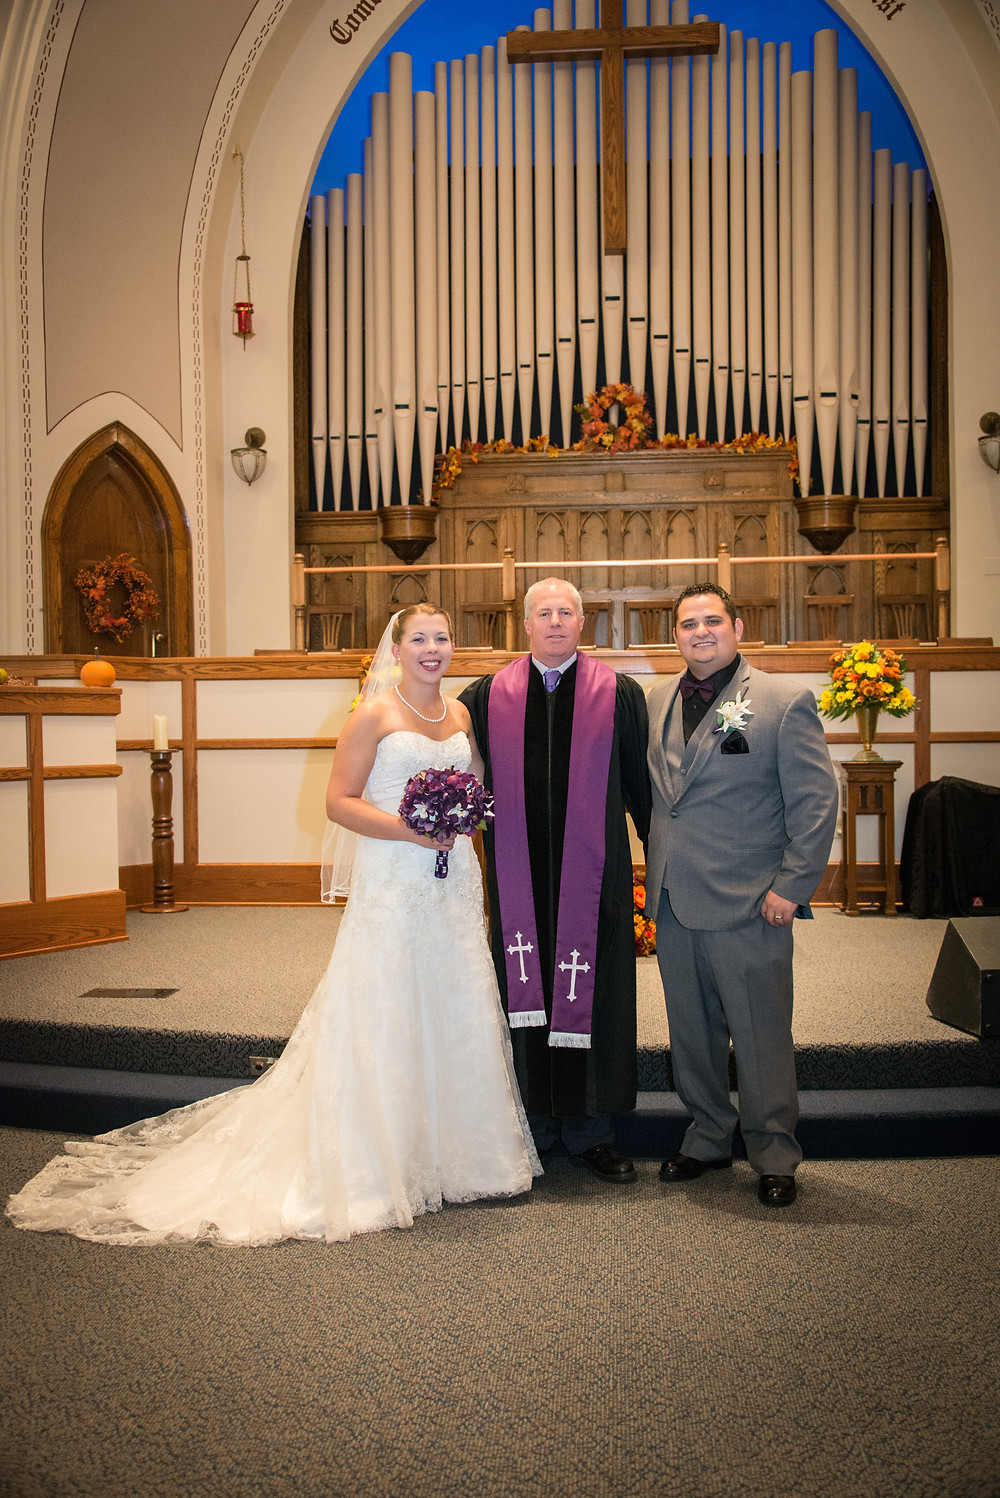 Wedding Photography by Ann Bickel; Photographic Memories; State College, PA